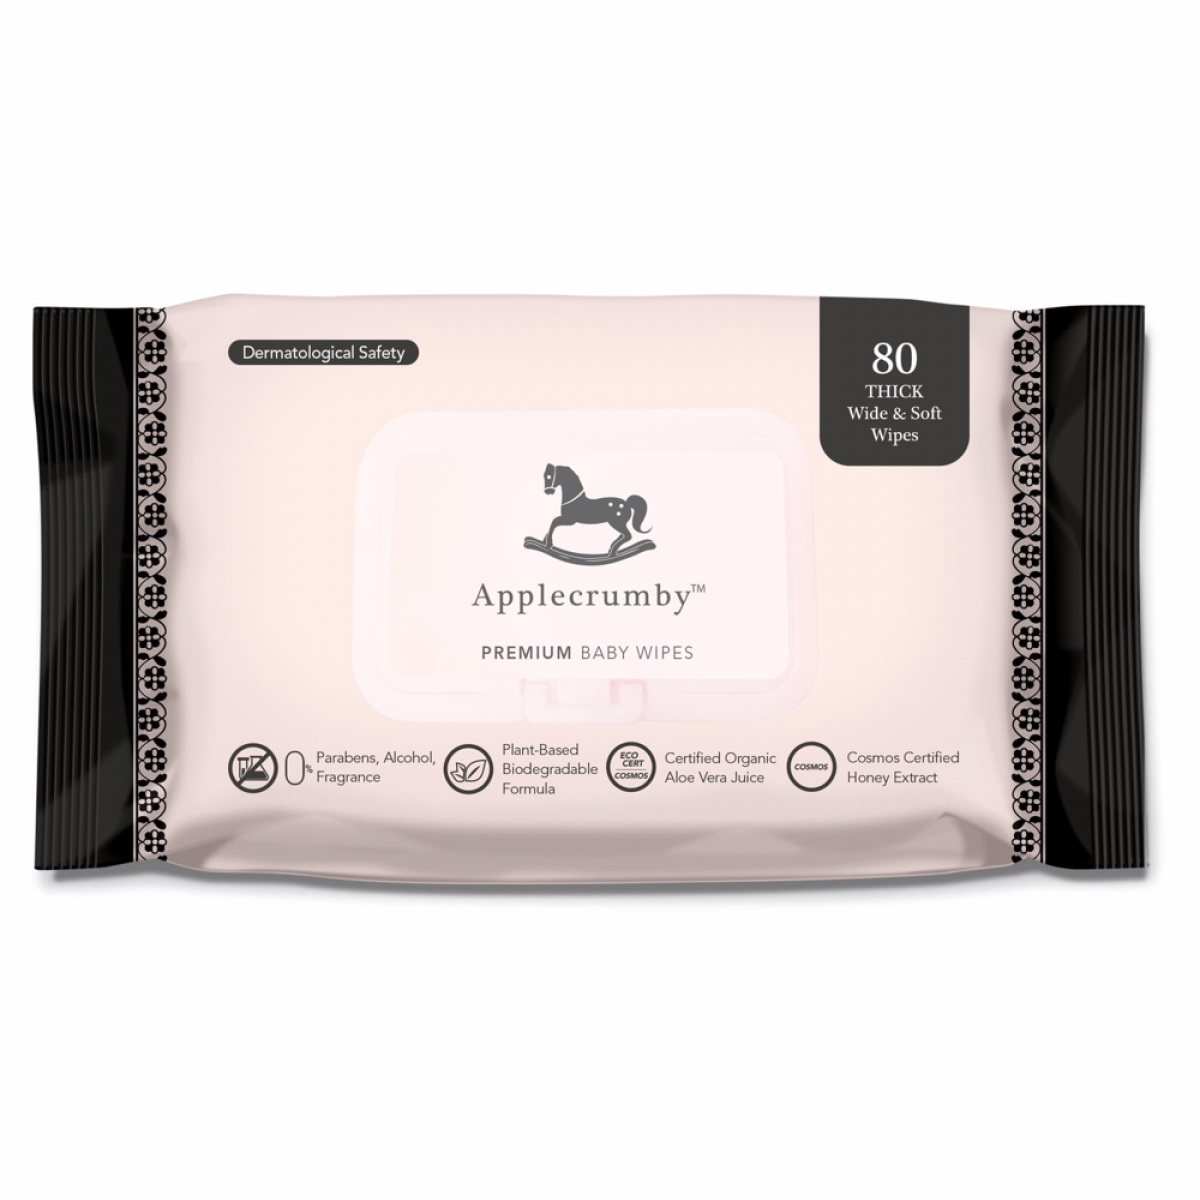 2 PACKS - Applecrumby™ Extra Thick Premium Baby Wipes (80 sheets)